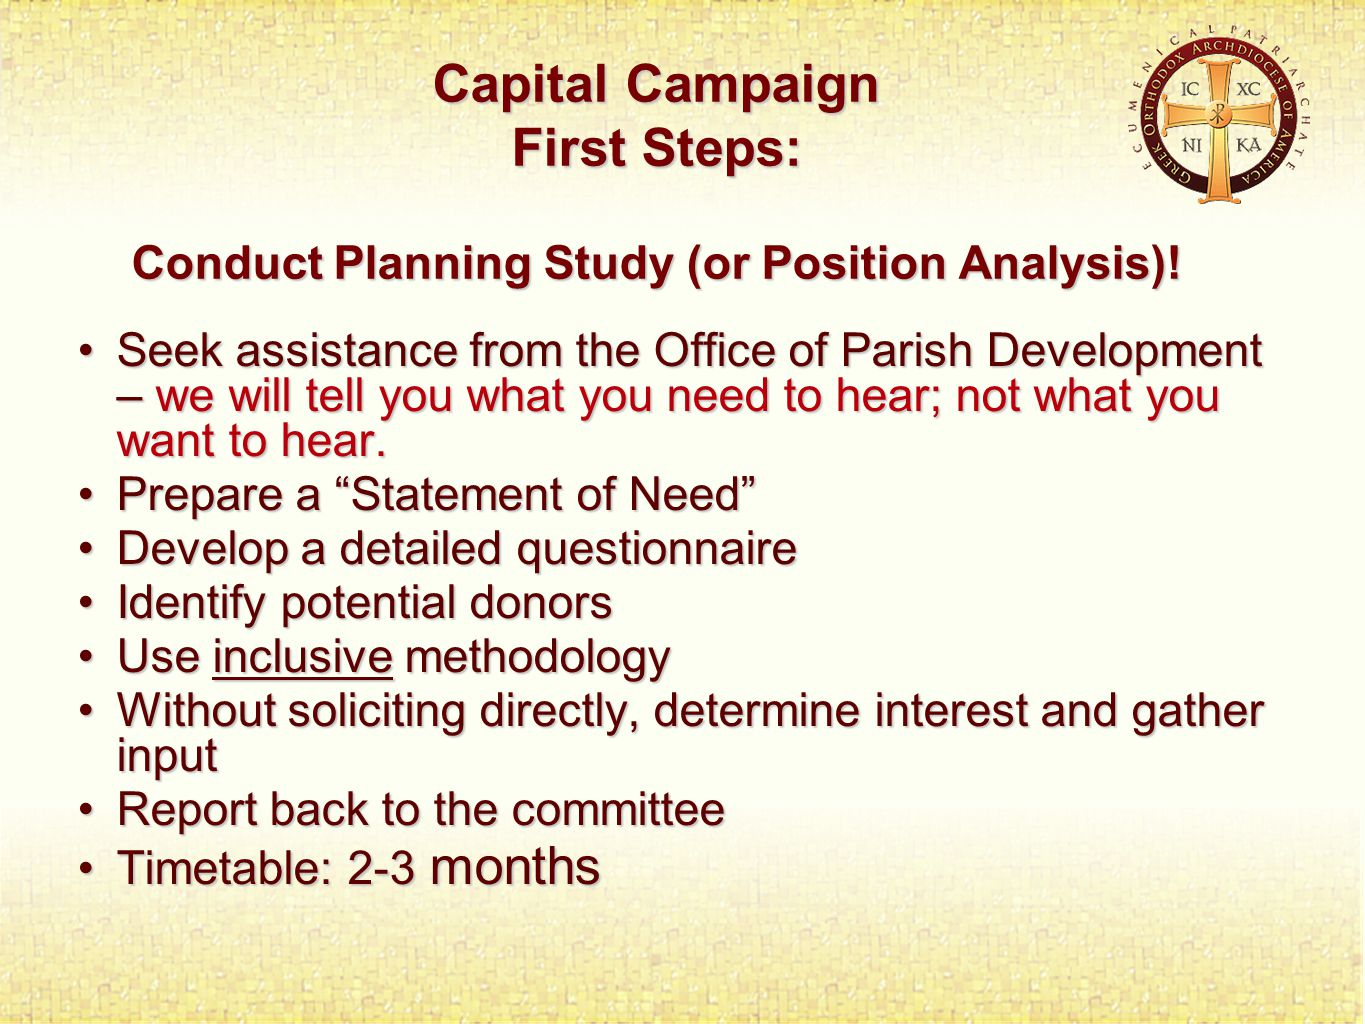 Capital Campaign First Steps: Conduct Planning Study (or Position Analysis).